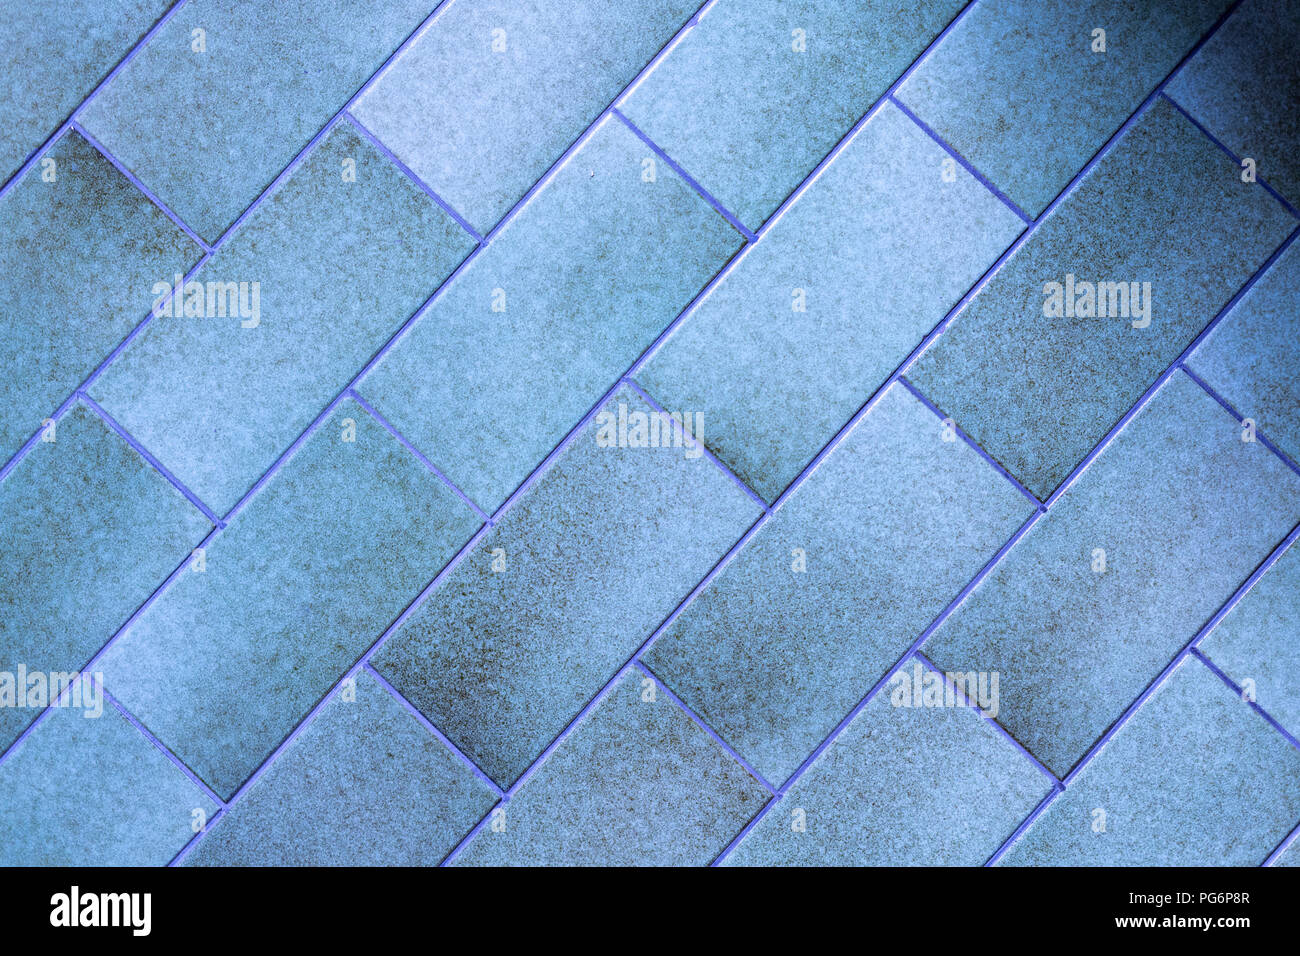 An abstract background of blue-green rectangular tiles - Stock Image